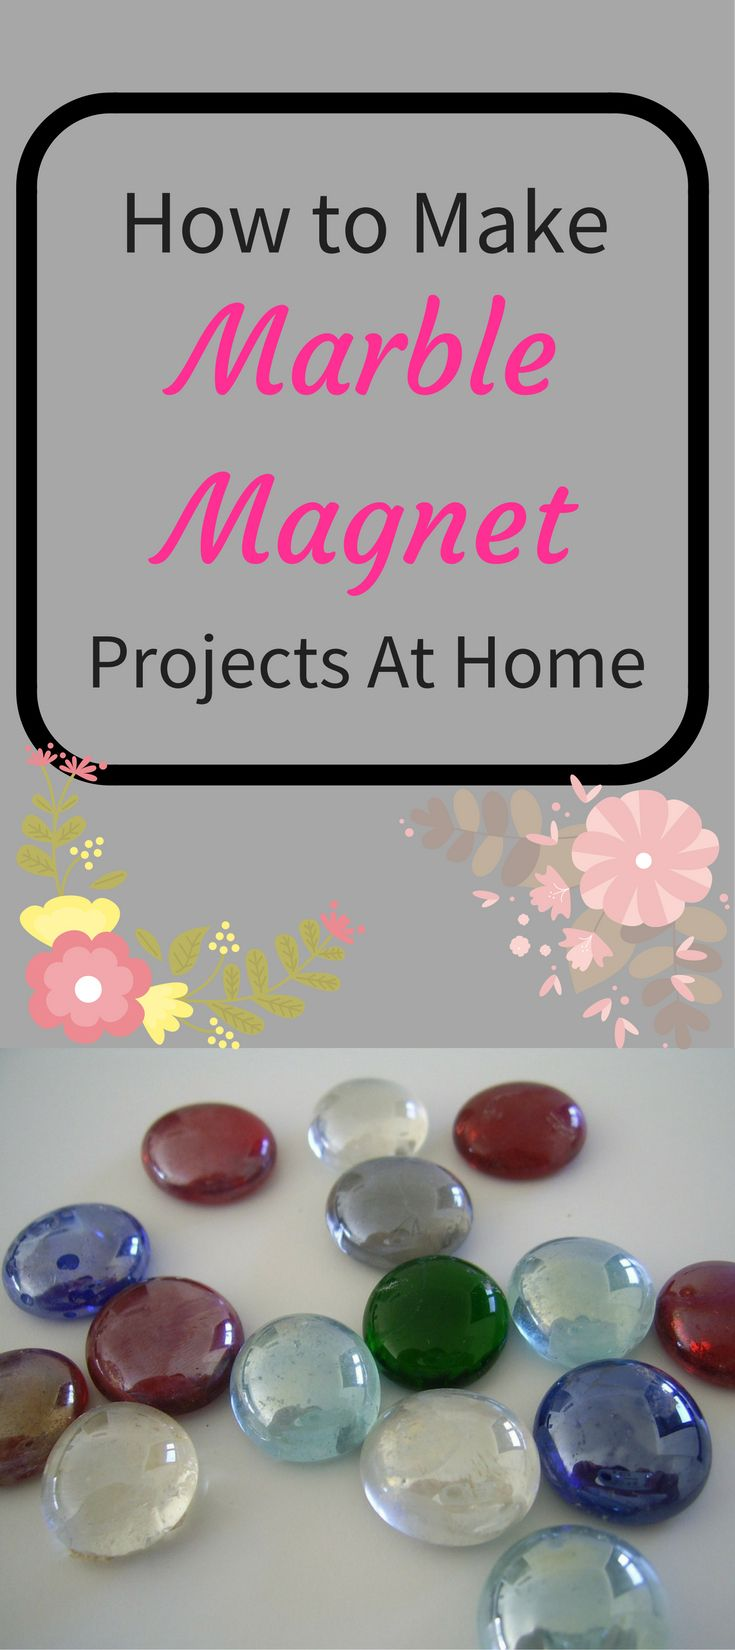 How To Make Marble Magnet Projects At Home Aspiring Homemaker